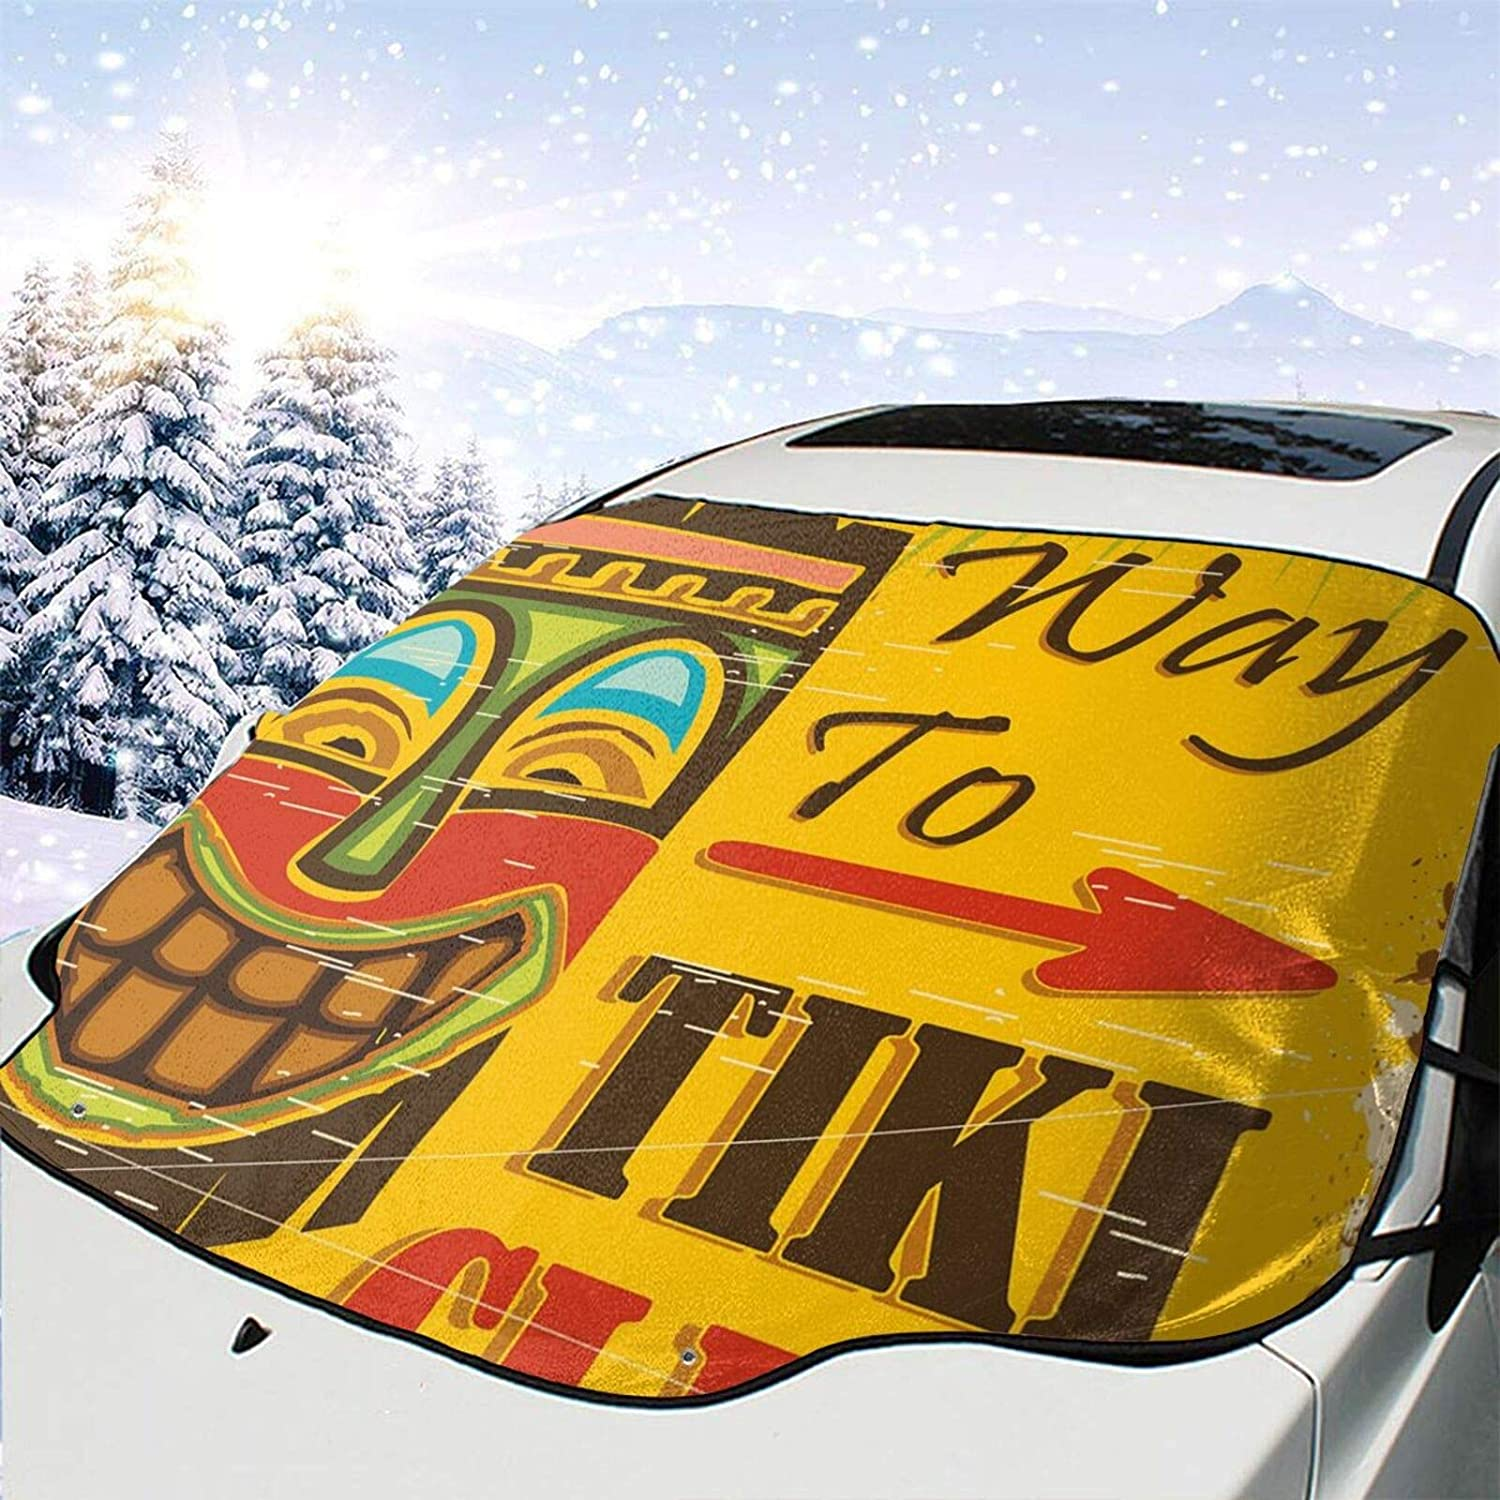 Car Front Window Rapid rise Windshield Snow Cover Way Tiki Max 85% OFF Vintage to Club